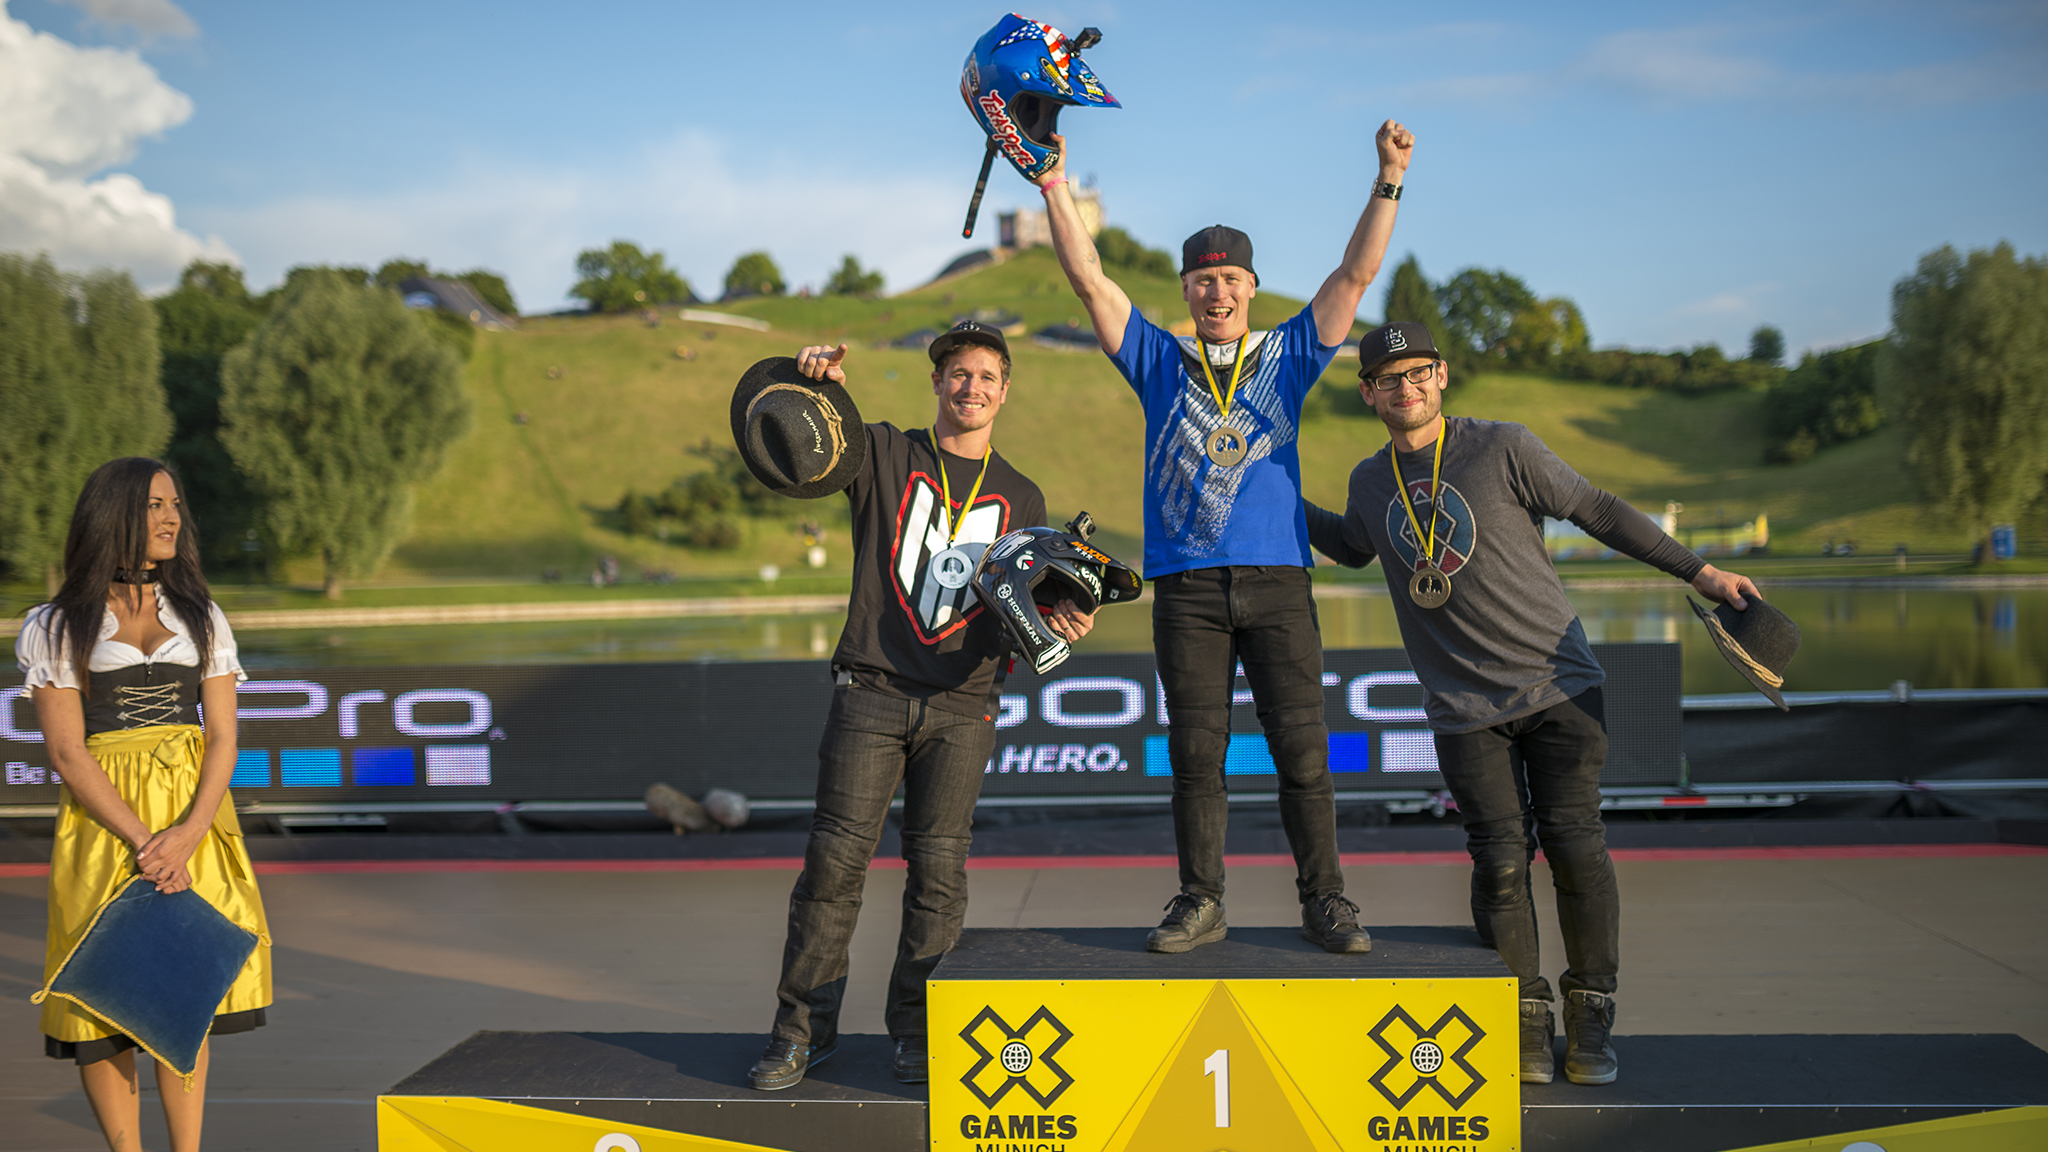 Chad Kagy wins BMX Big Air